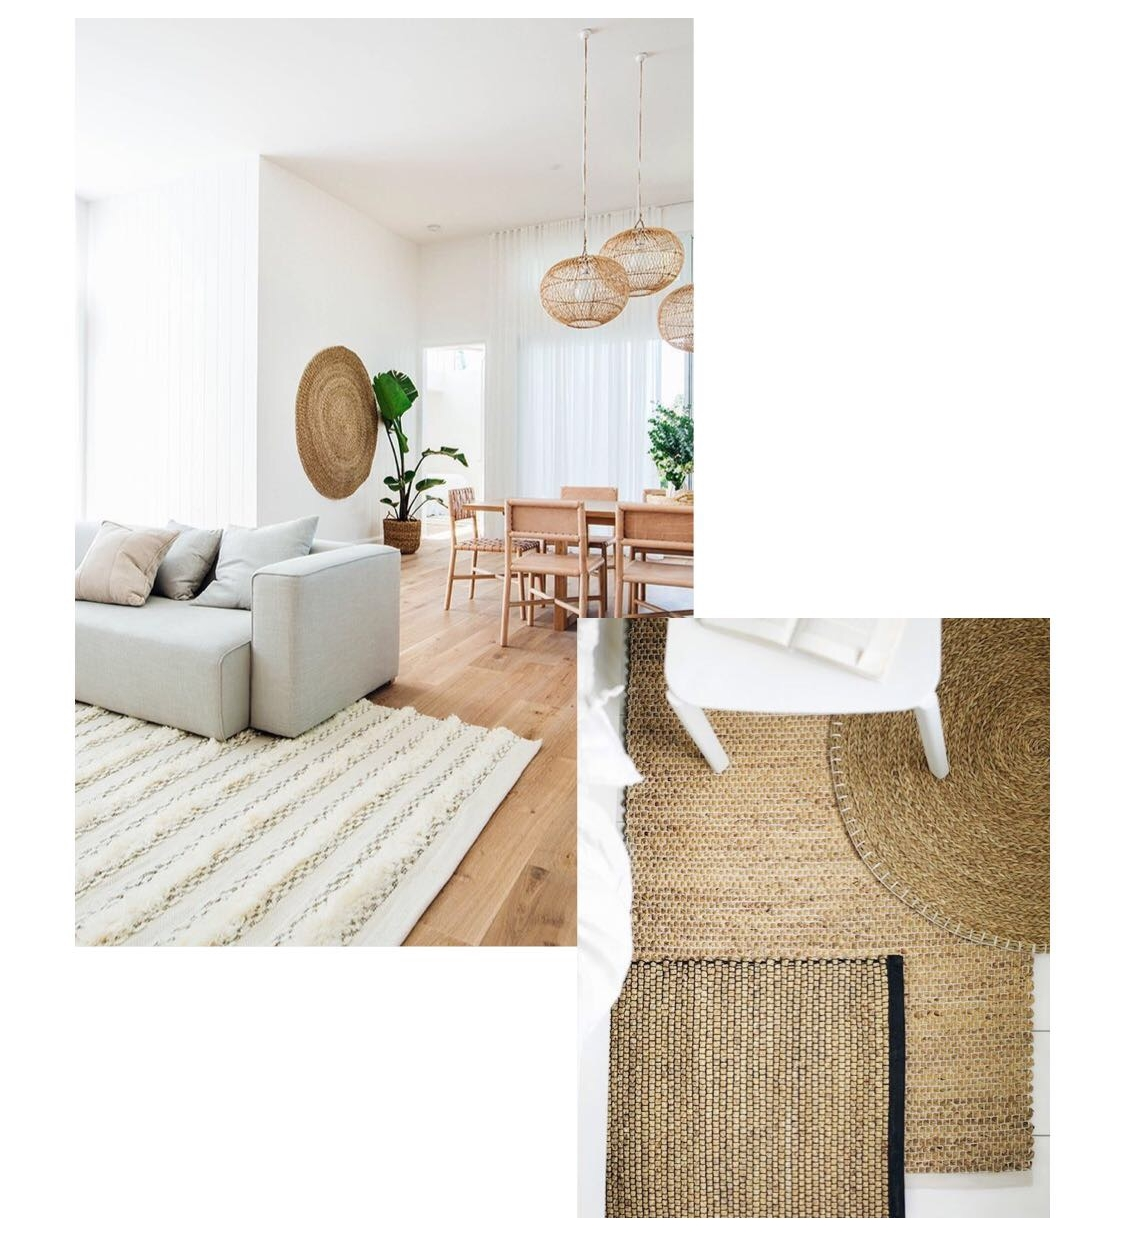 INTERIOR WISHLIST - Some of the items I have yet to buy or find...